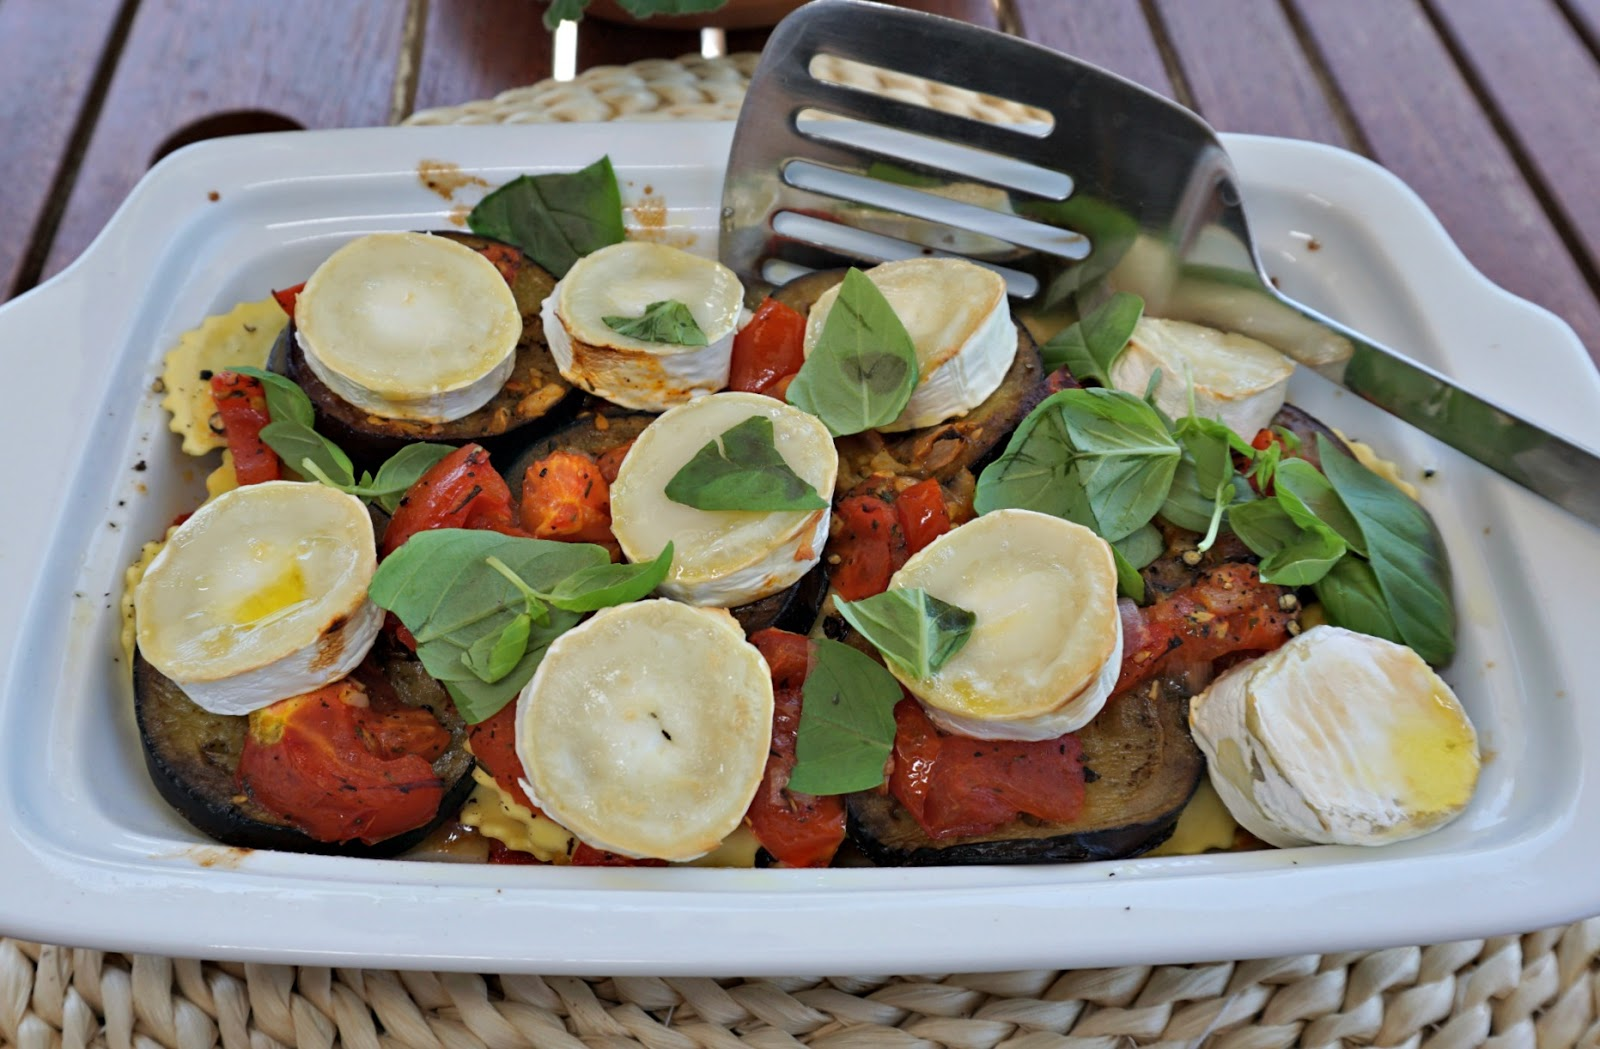 Ravioli gratin with tomatoes, aubergines and chèvre